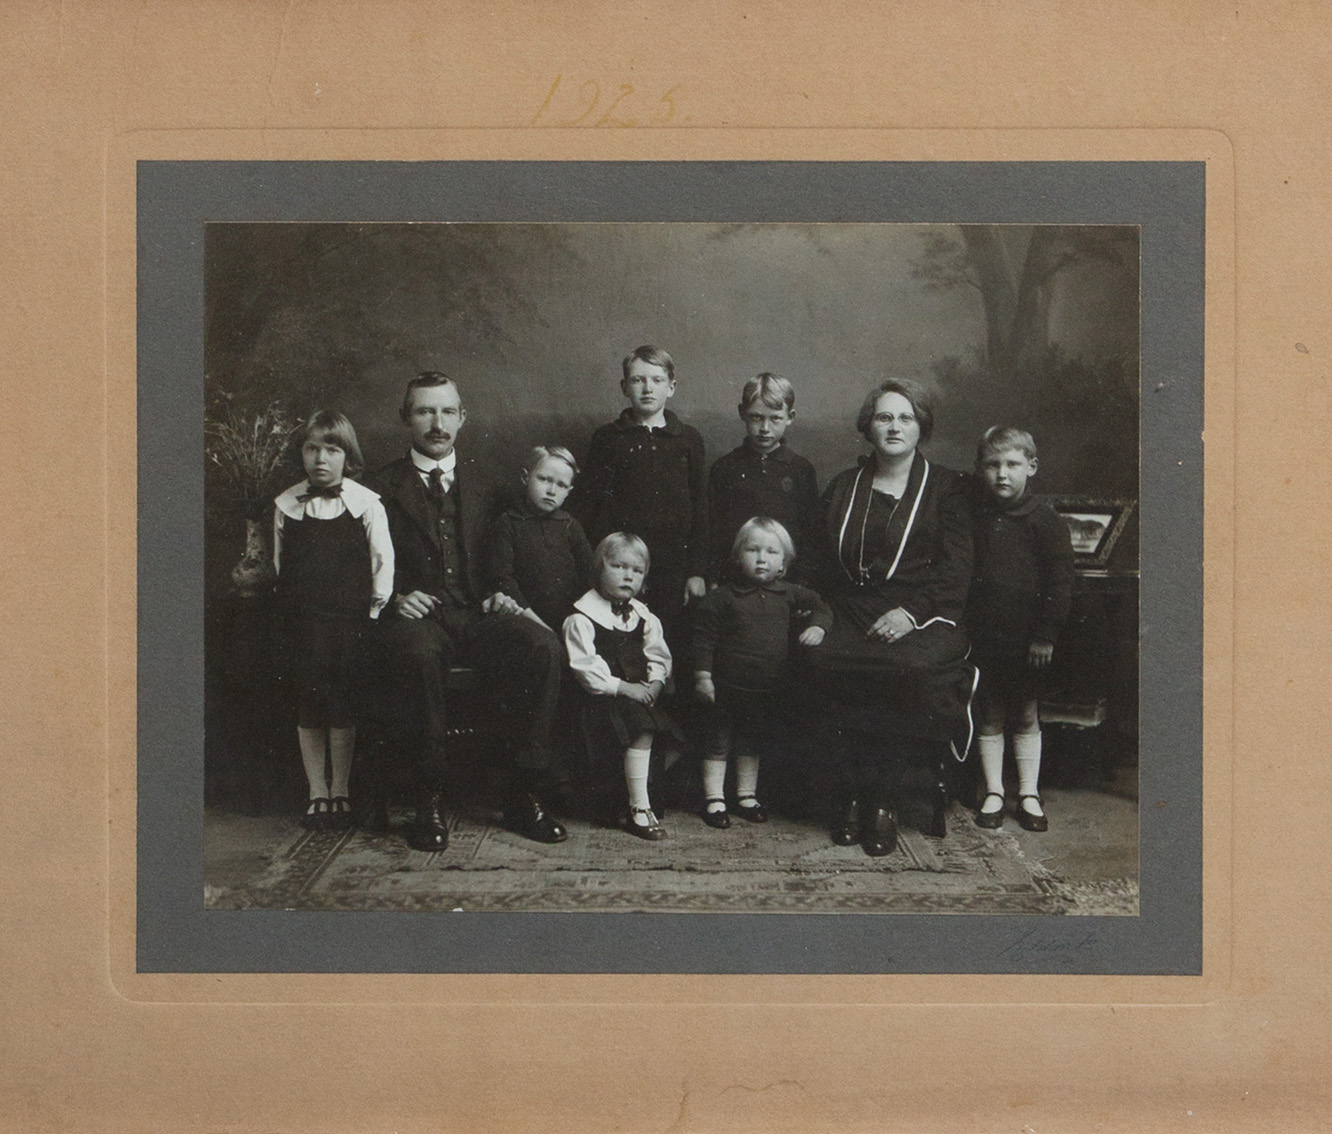 Barbara's grandparents, Frederic and Irene Prior (1925). Barbara's father Errol is the tall boy standing in the middle.